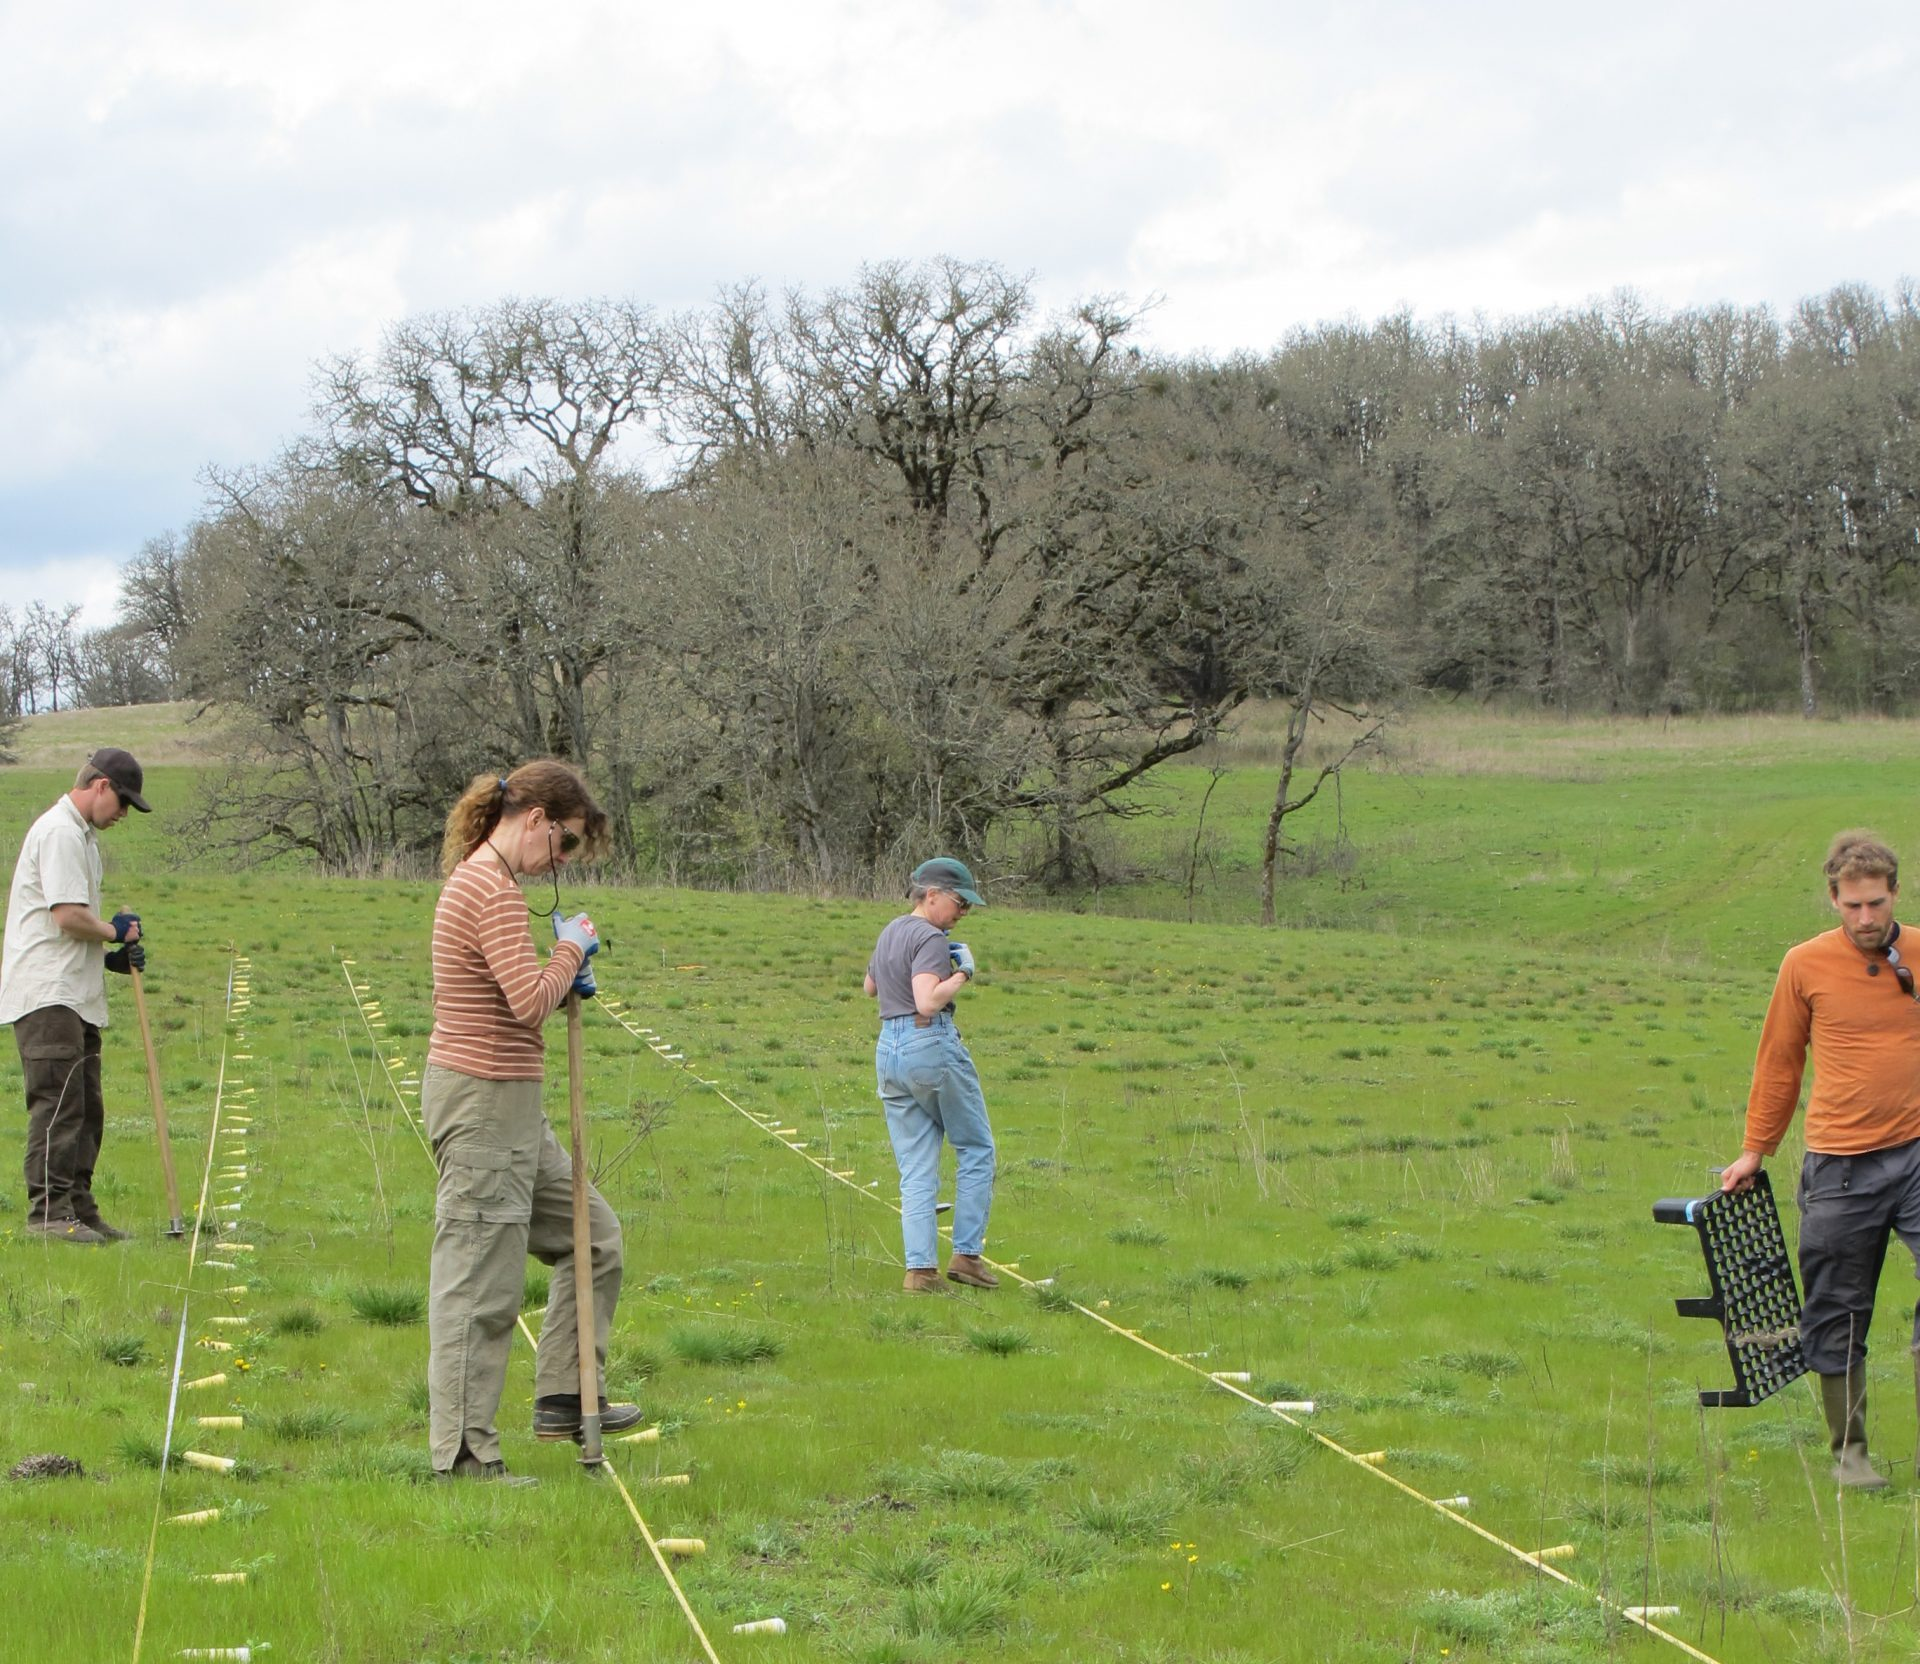 IAE's restoration plantings were done in an experimental design, planted in a grid to aid with tracking success.